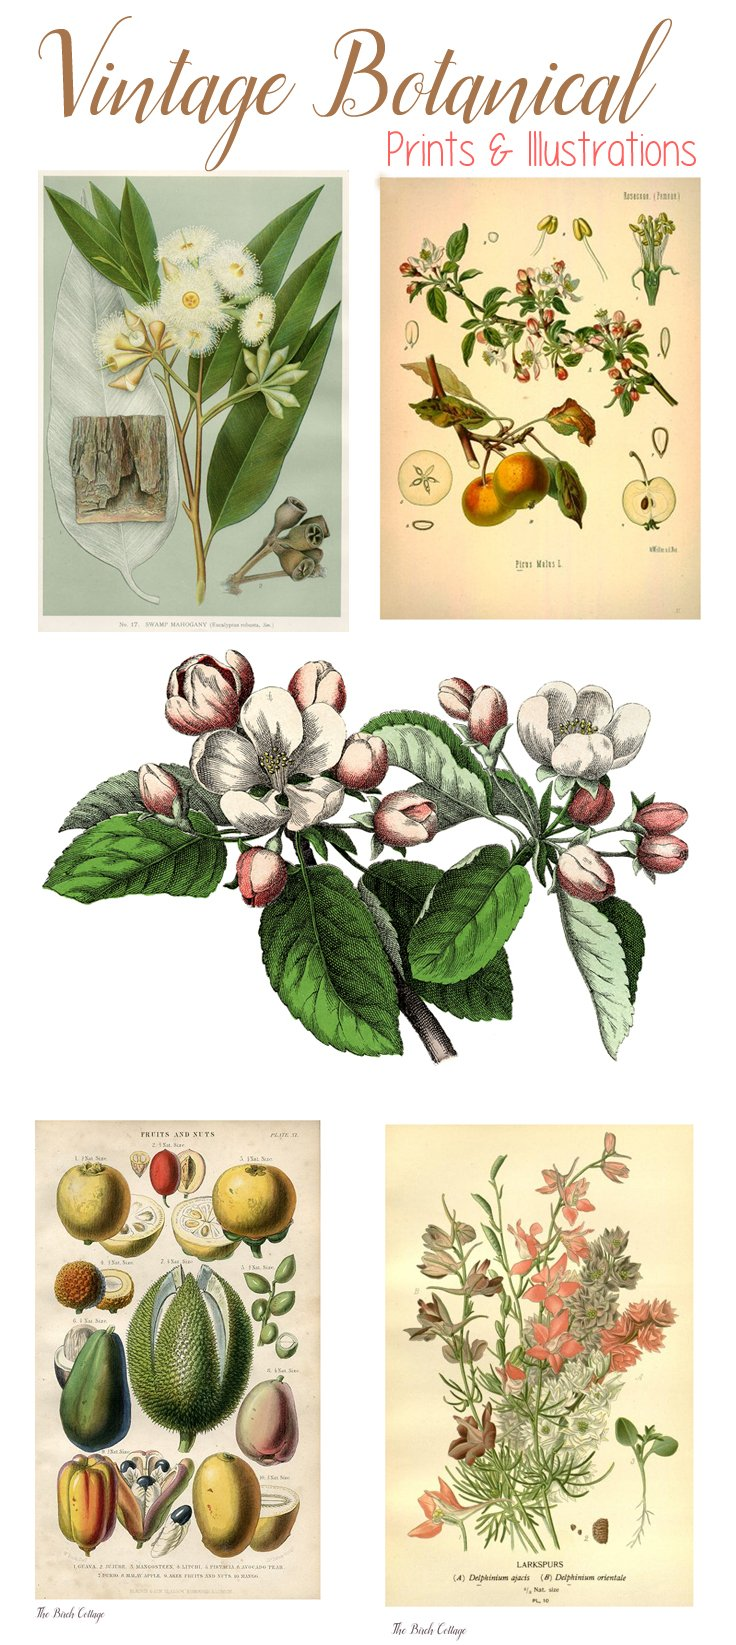 Where to Find Vintage Botanical Prints. A list of online resources for vintage botanical prints from The Birch Cottage